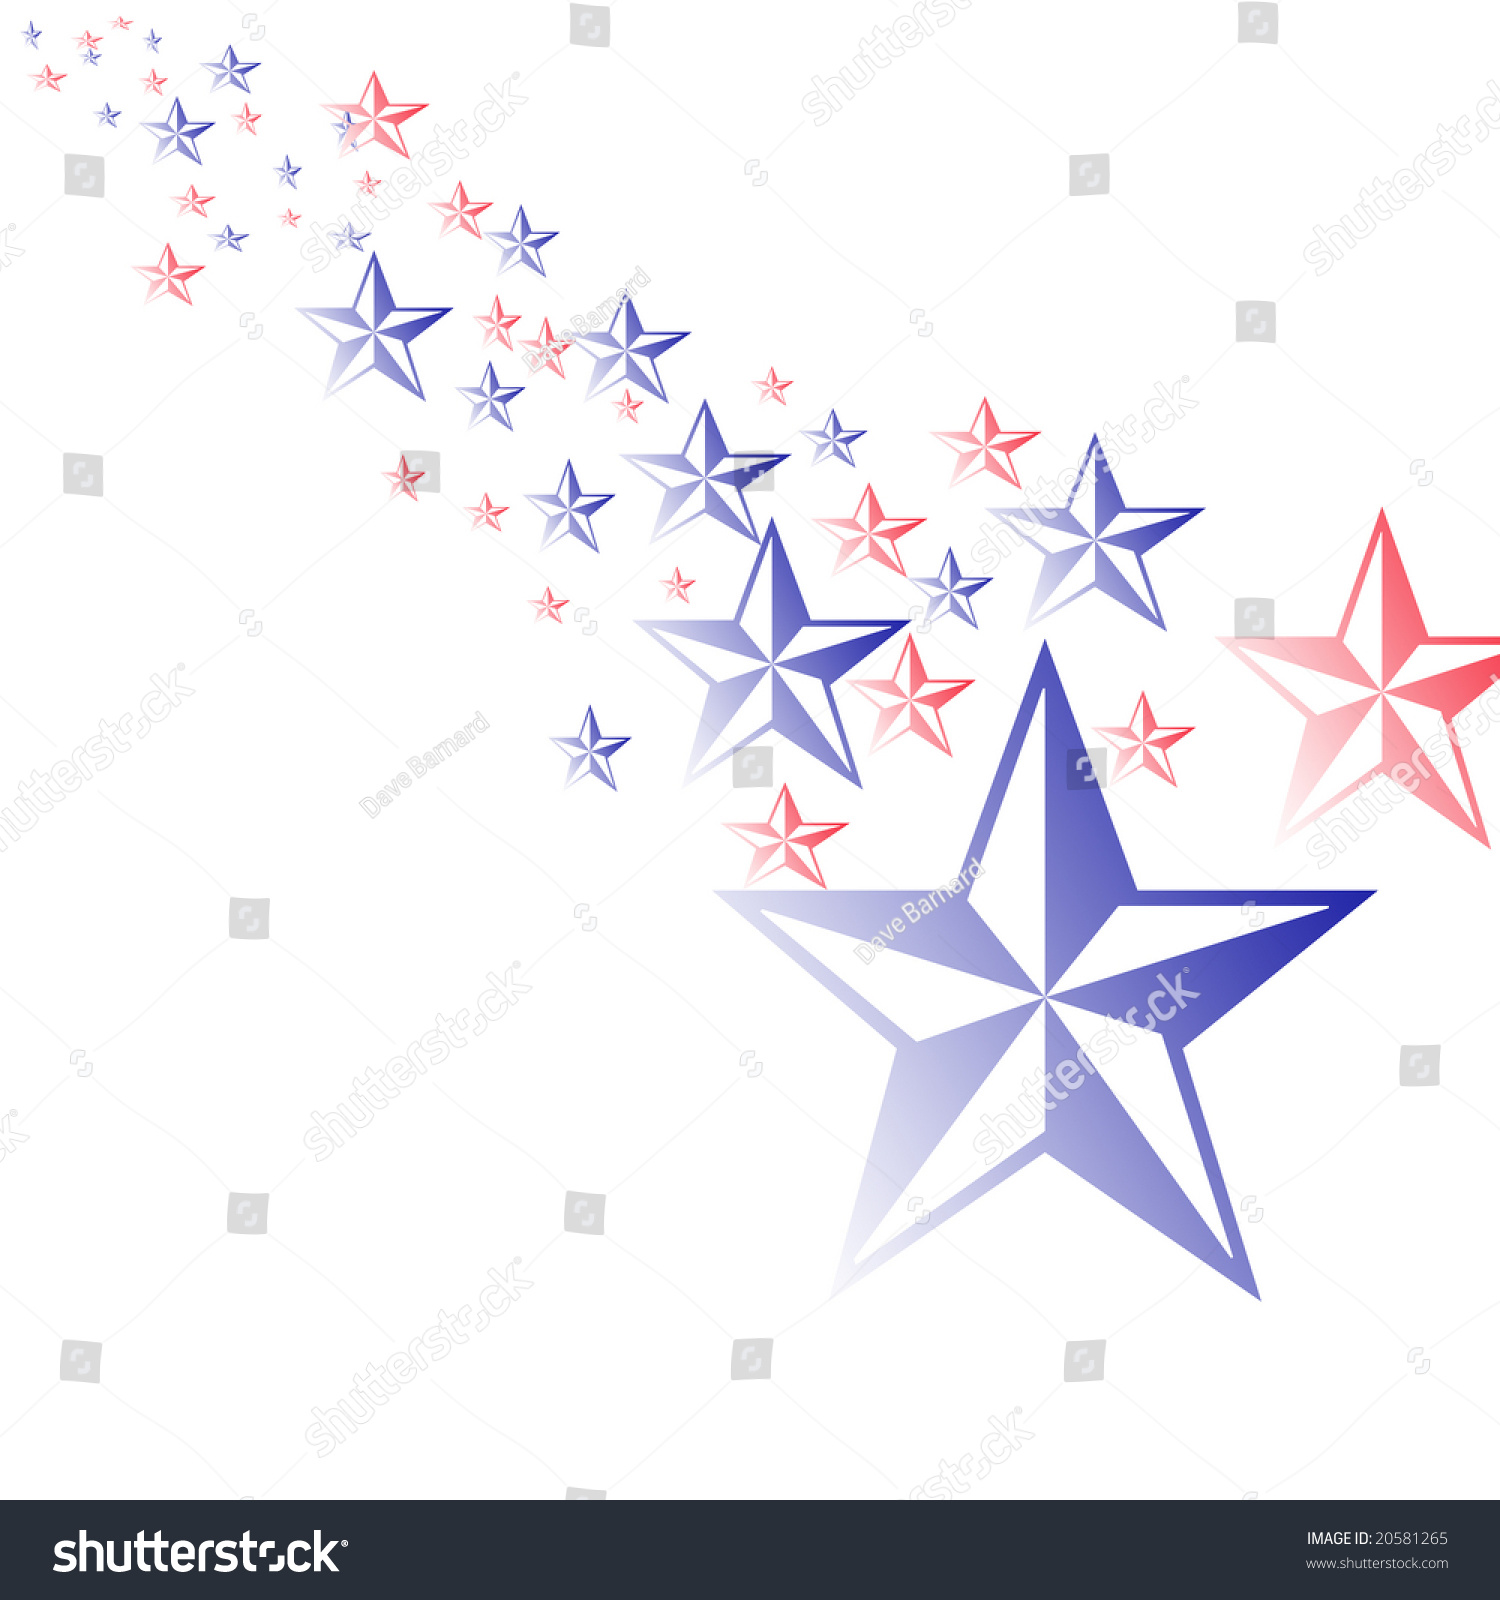 Red White And Blue Stars Illustration - 20581265 ... - photo#13